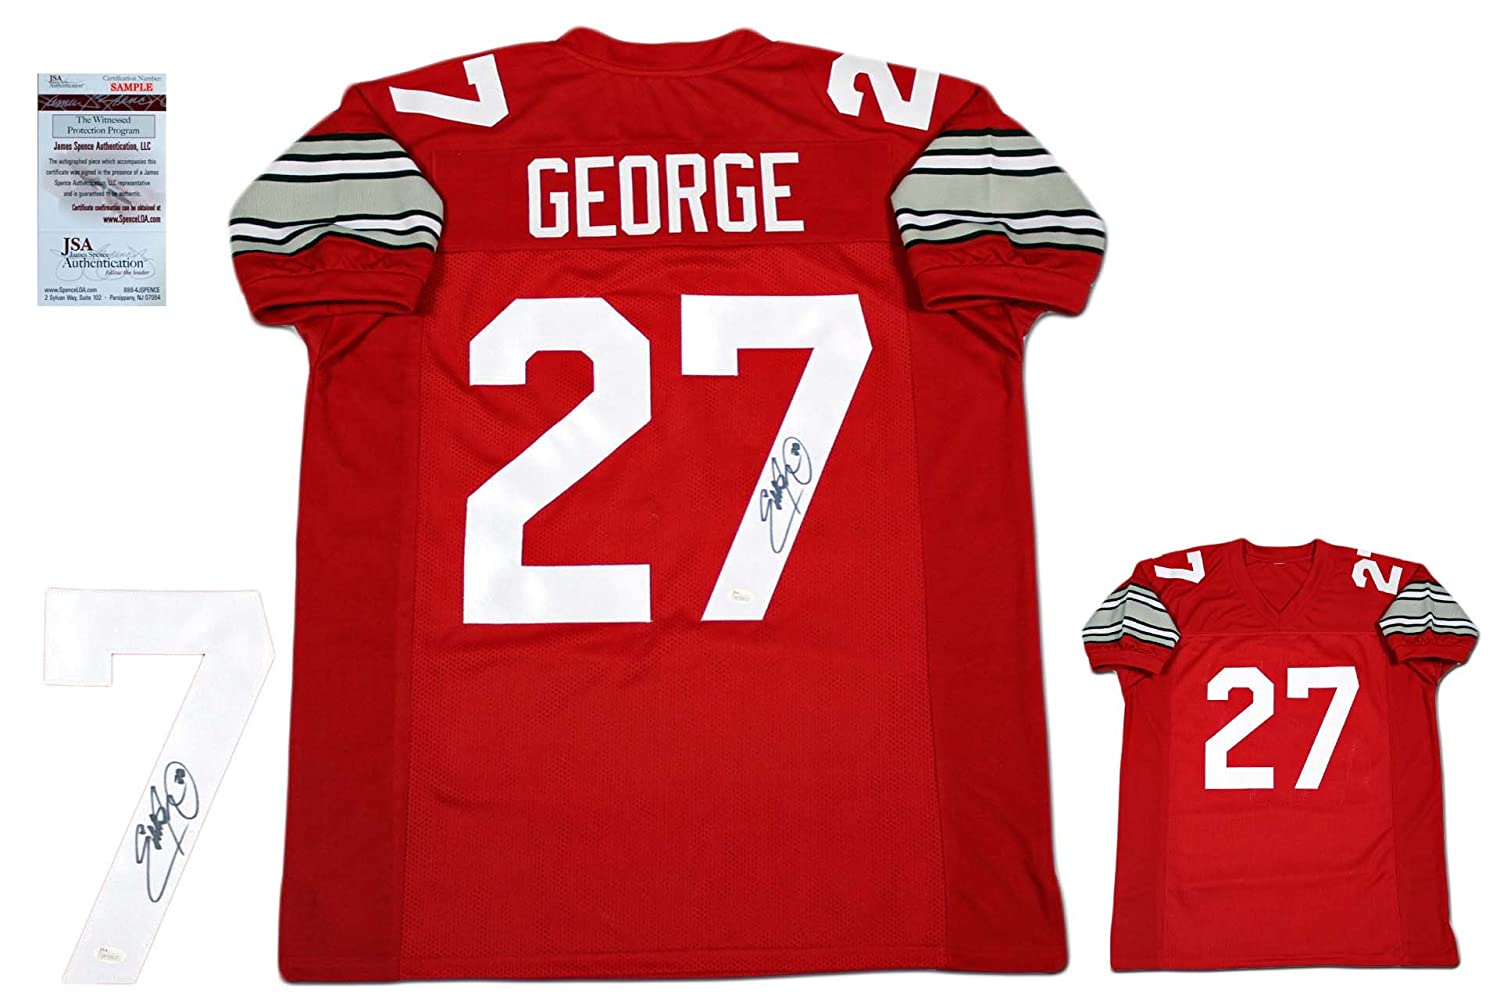 separation shoes 2ab6a cc6f0 Eddie George AUTOGRAPHED Jersey - JSA Witnessed authentic at ...